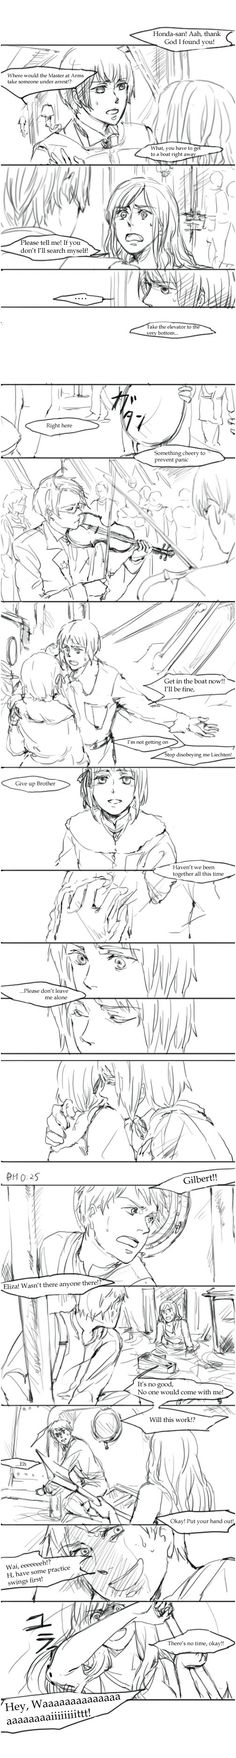 Hetalia Titanic 5/18 (click to see the whole thing)